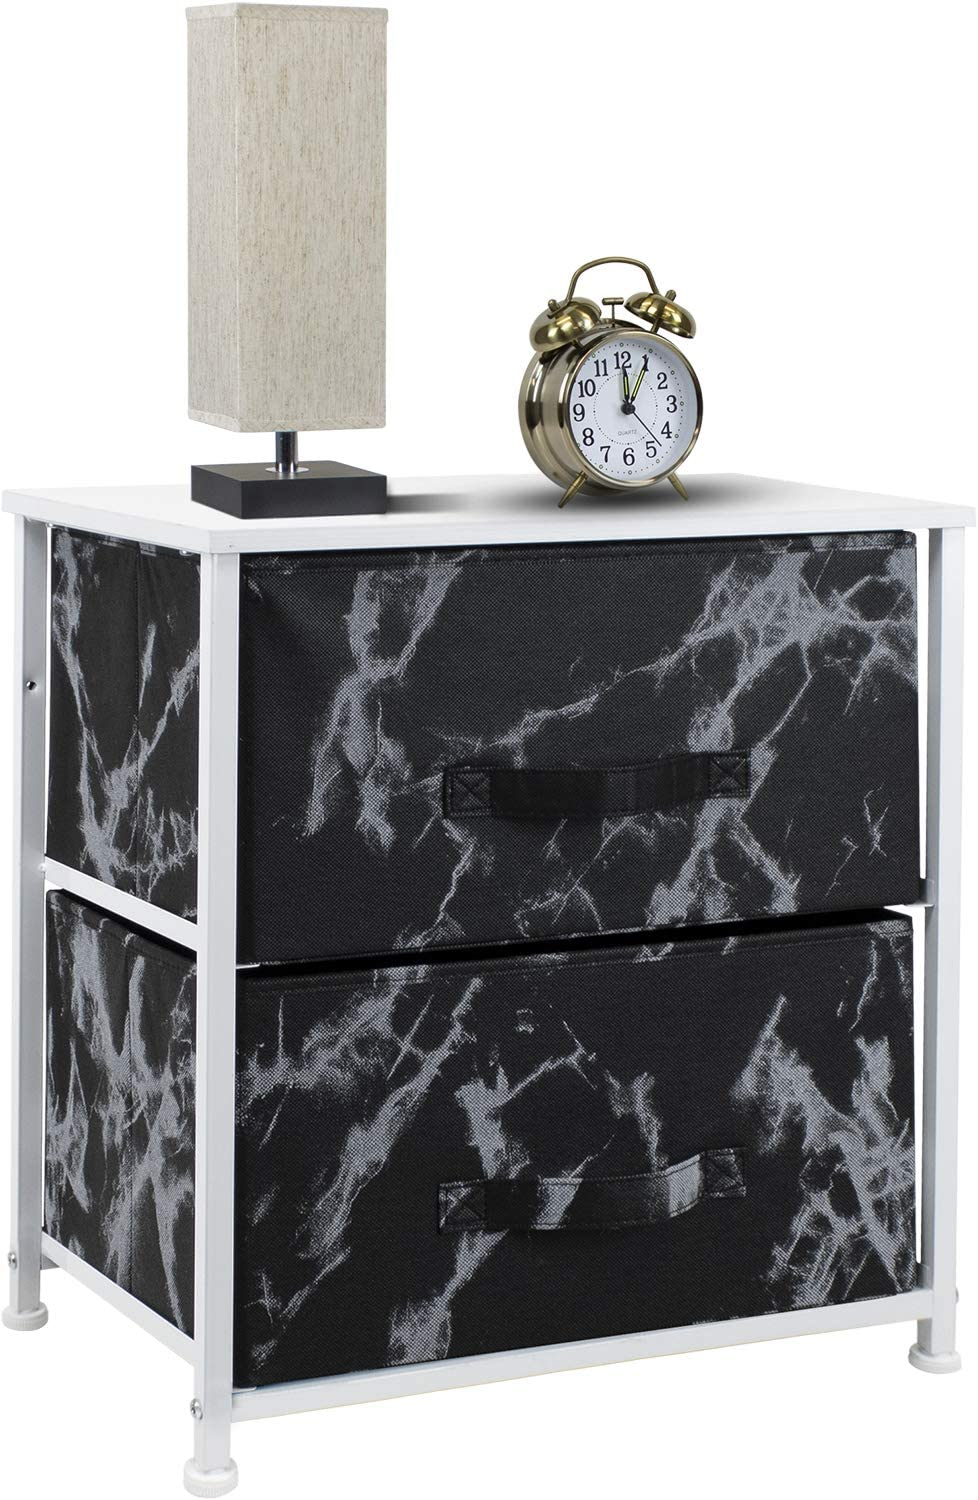 Wood Top Steel Frame Sorbus Nightstand with 2 Drawers Office Bedroom Accessories Bedside Furniture /& Night Stand End Table Dresser for Home Marble Black /– Black Frame College Dorm